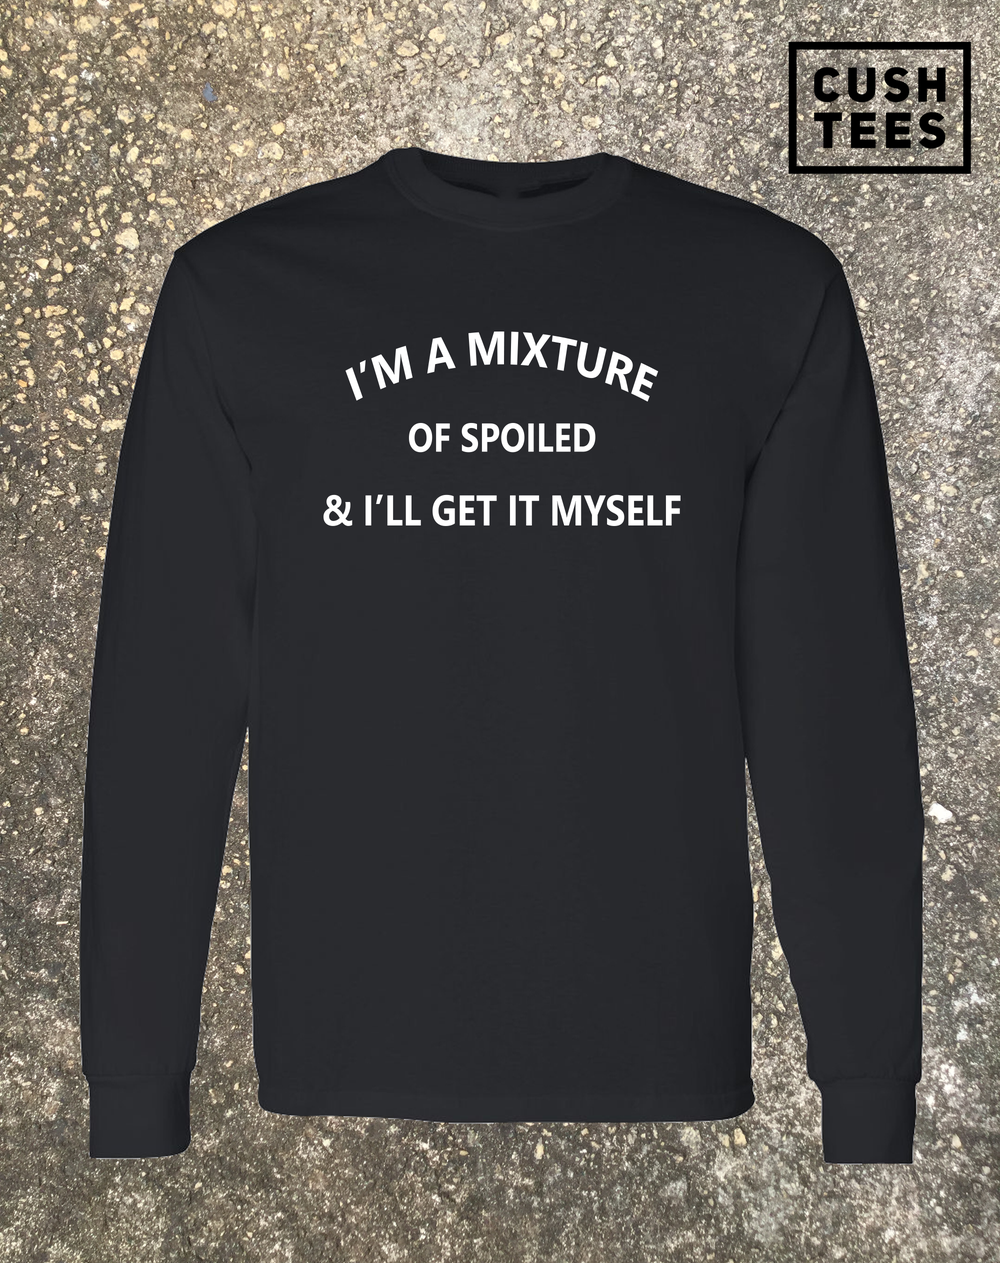 I'm a mixture of spoiled & I'll get it myself (Unisex) Long sleeve shirt